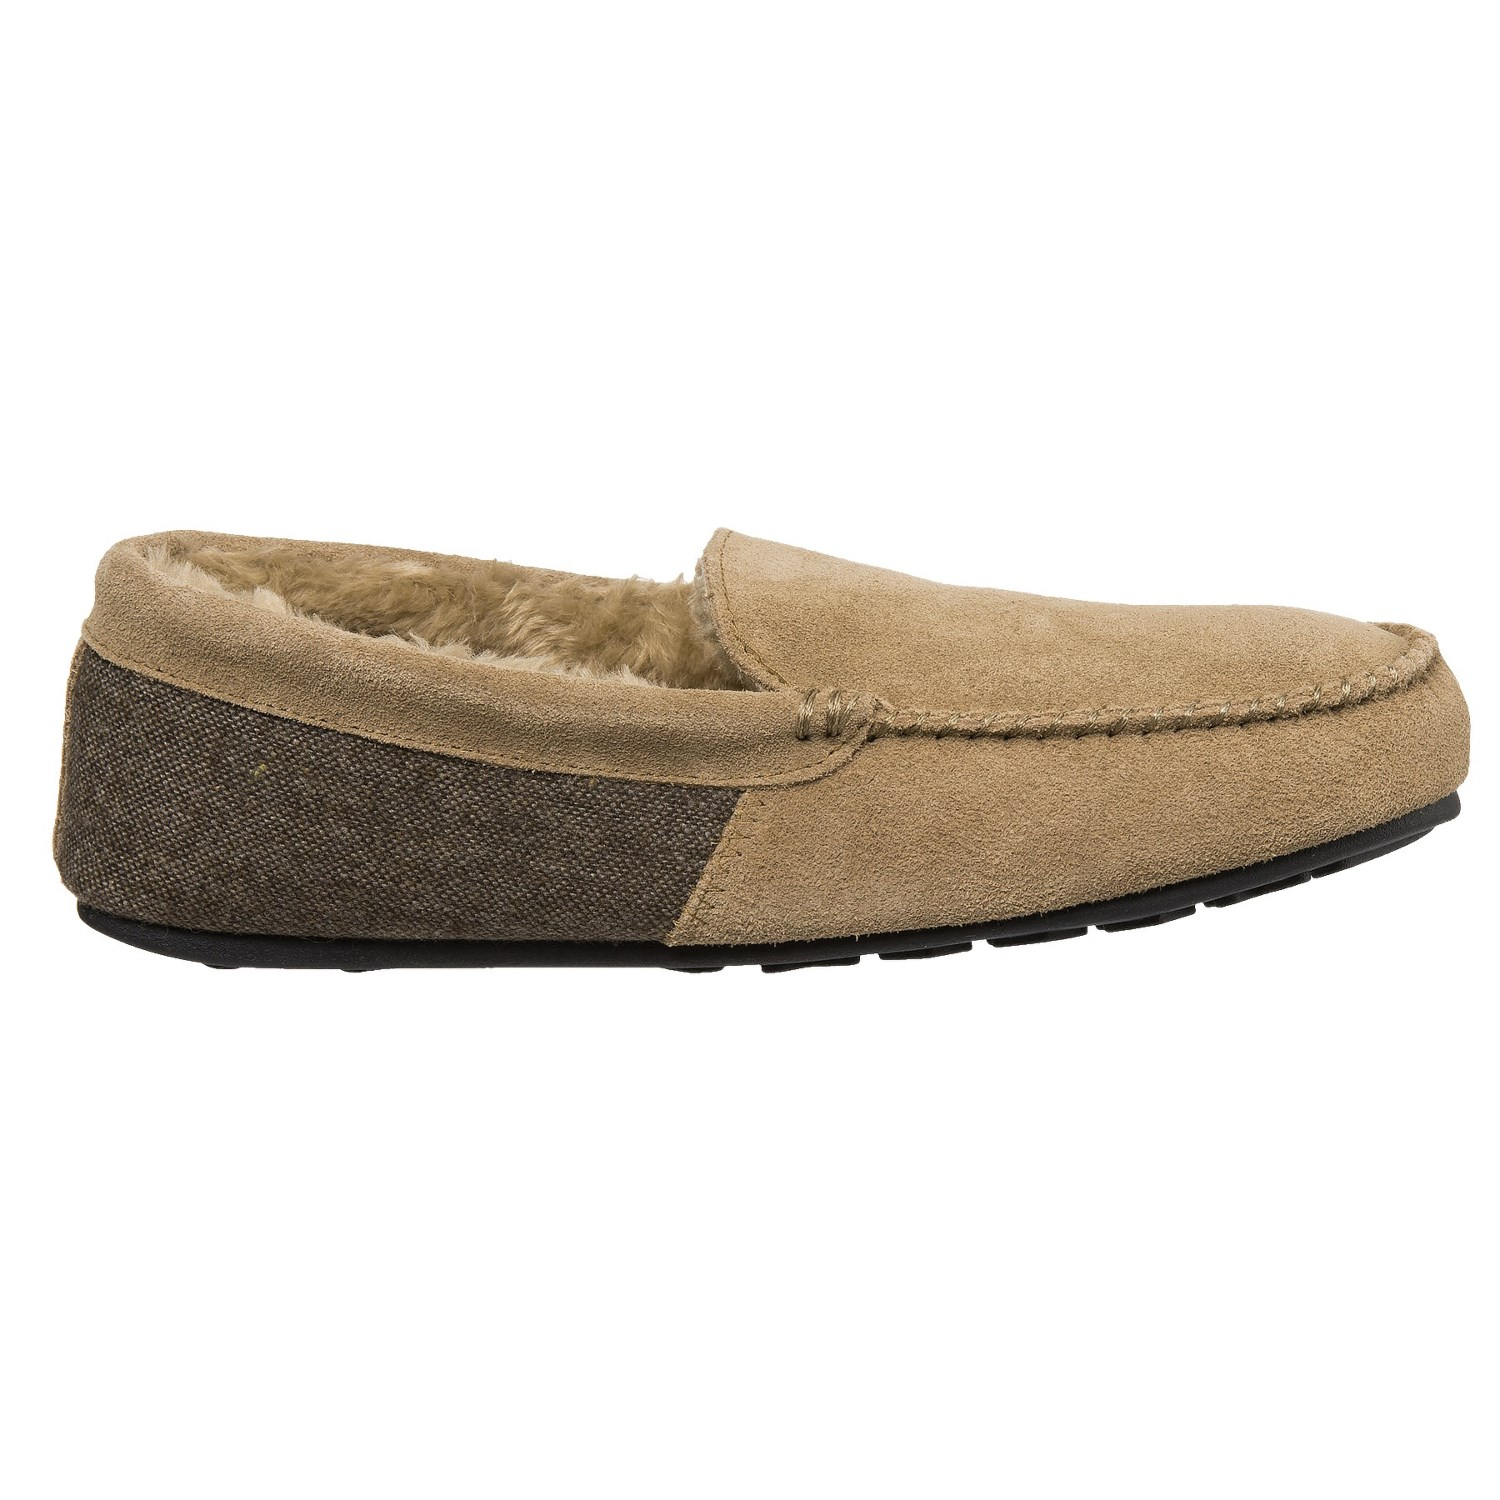 f16f31f1eb13 HideAways by L.B. Evans Hideaways by L.B. Evans Grayson Moccasins - Suede  (For Men)